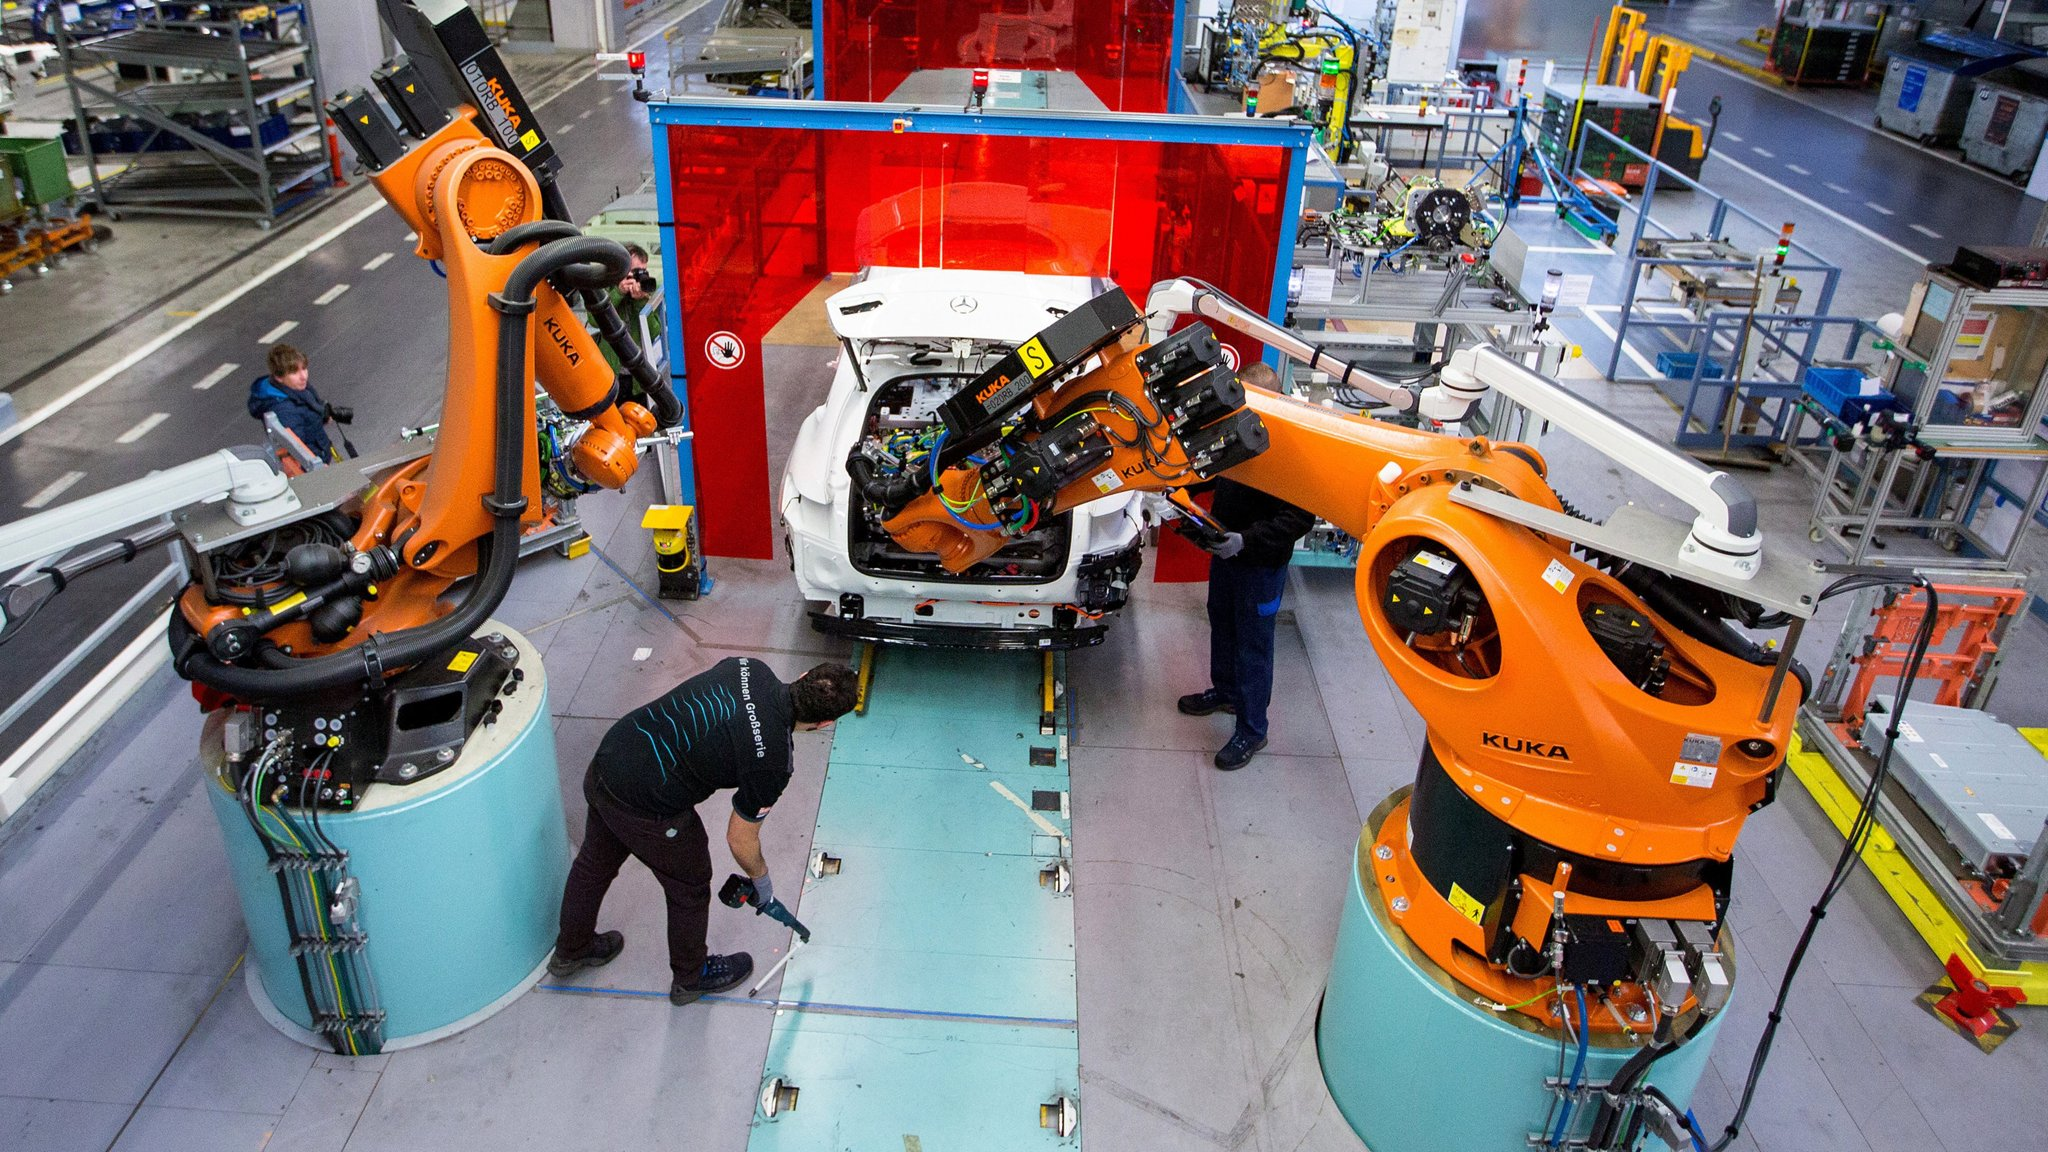 Germany's Kuka plans move into world of personal assistant robots |  Financial Times